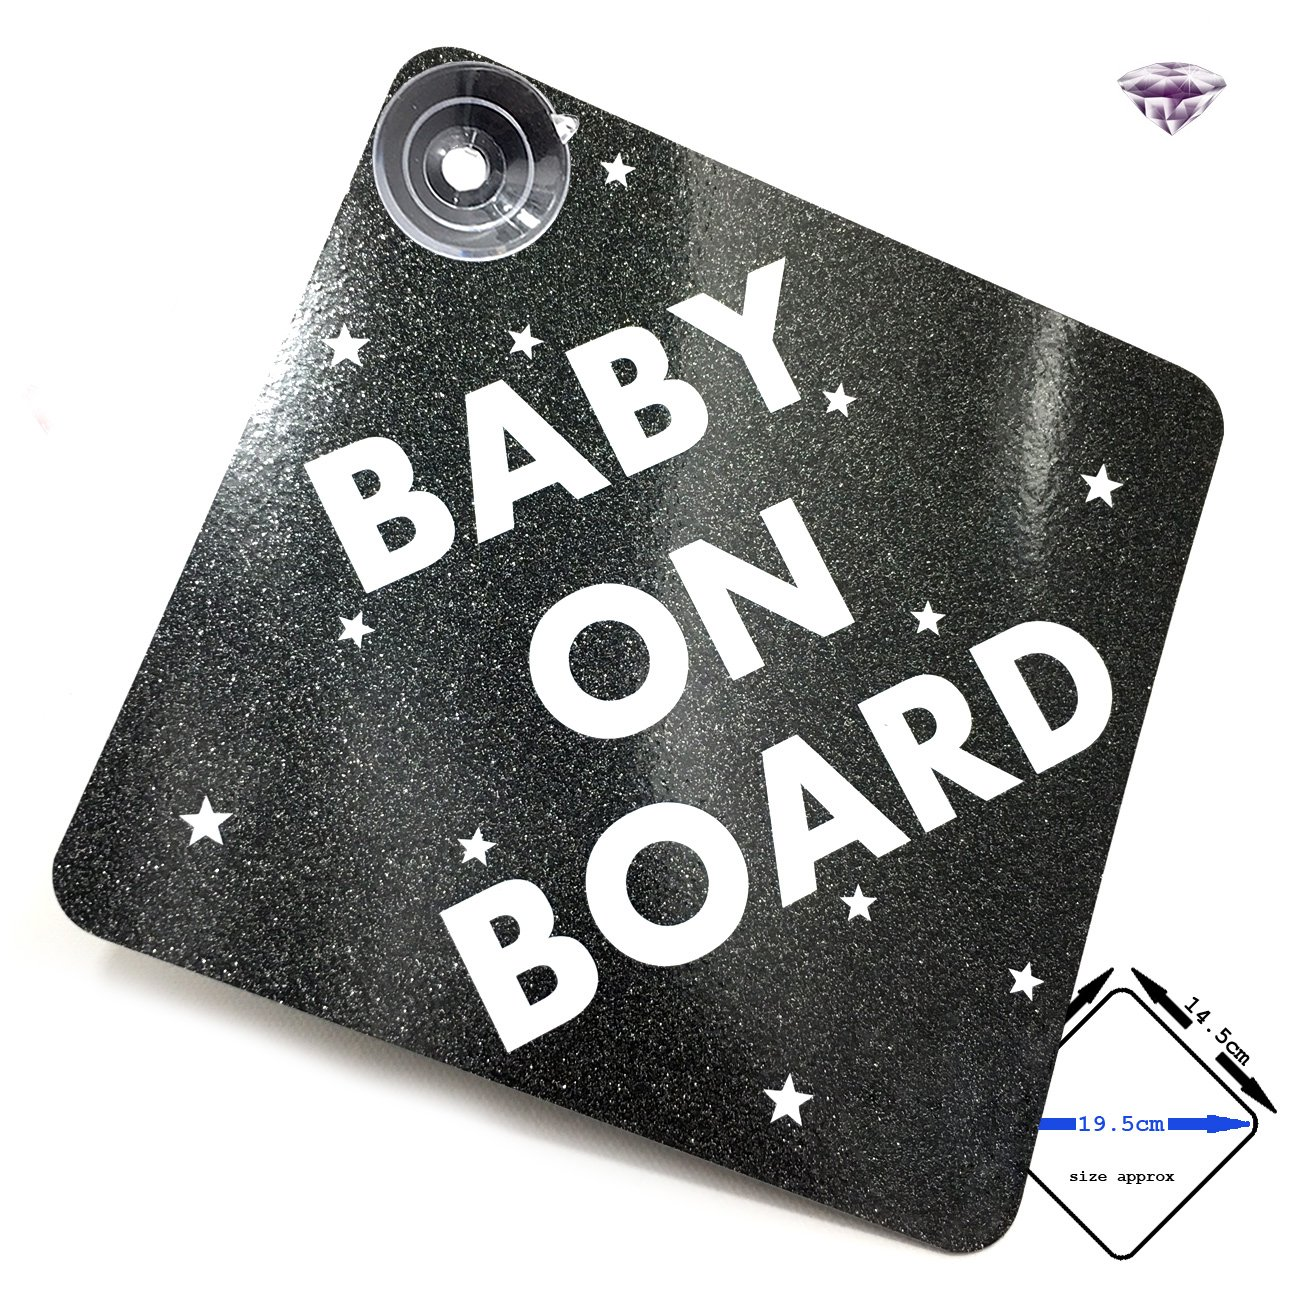 SPARKLING smokey quartz//SUPER BRIGHT fluorescent yellow acepoprt BABY ON BOARD car sign with suction cups